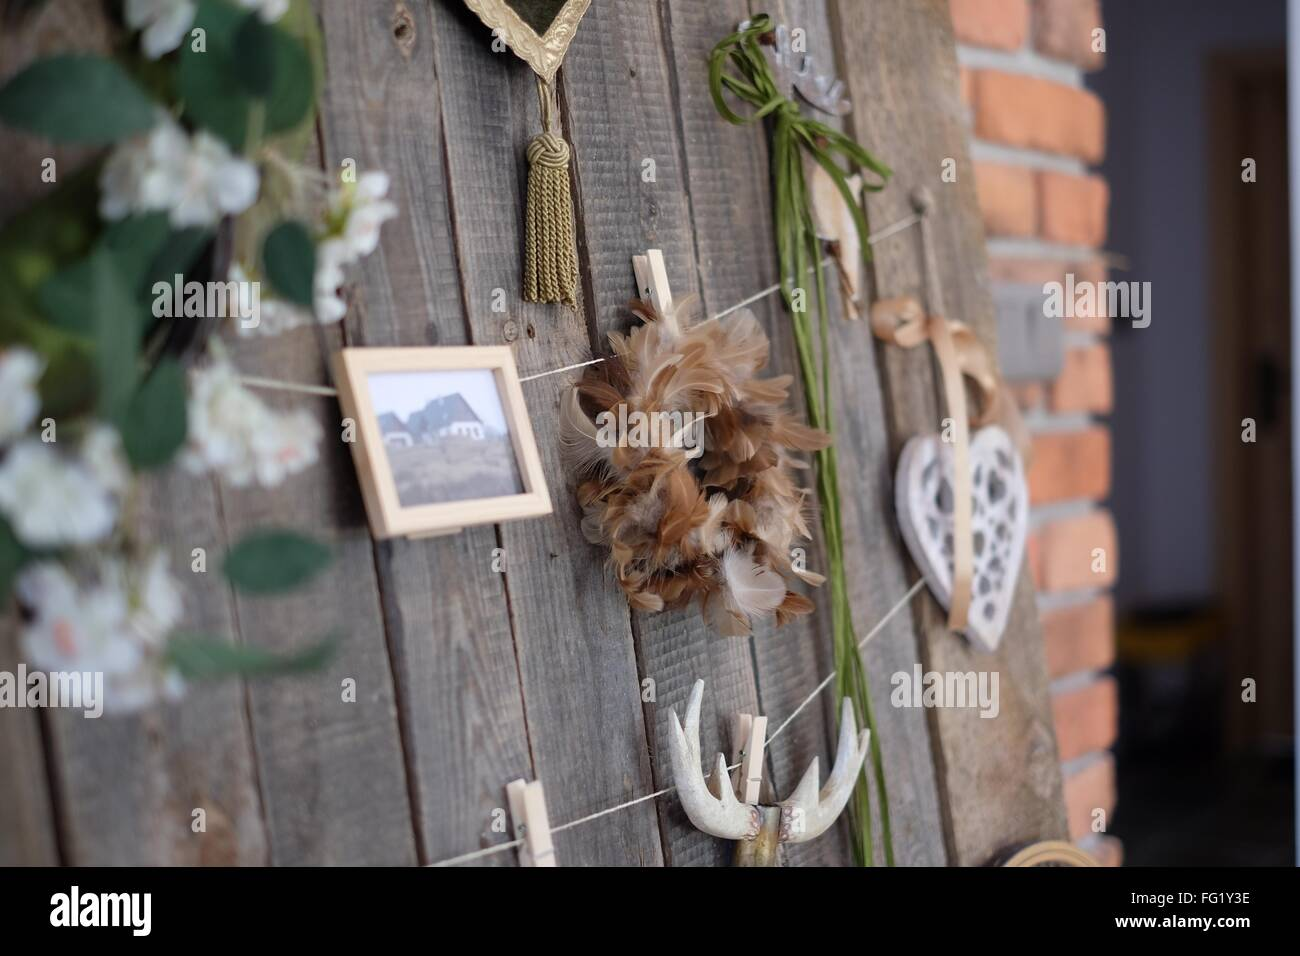 Dreamcatcher On Wooden Door - Stock Image